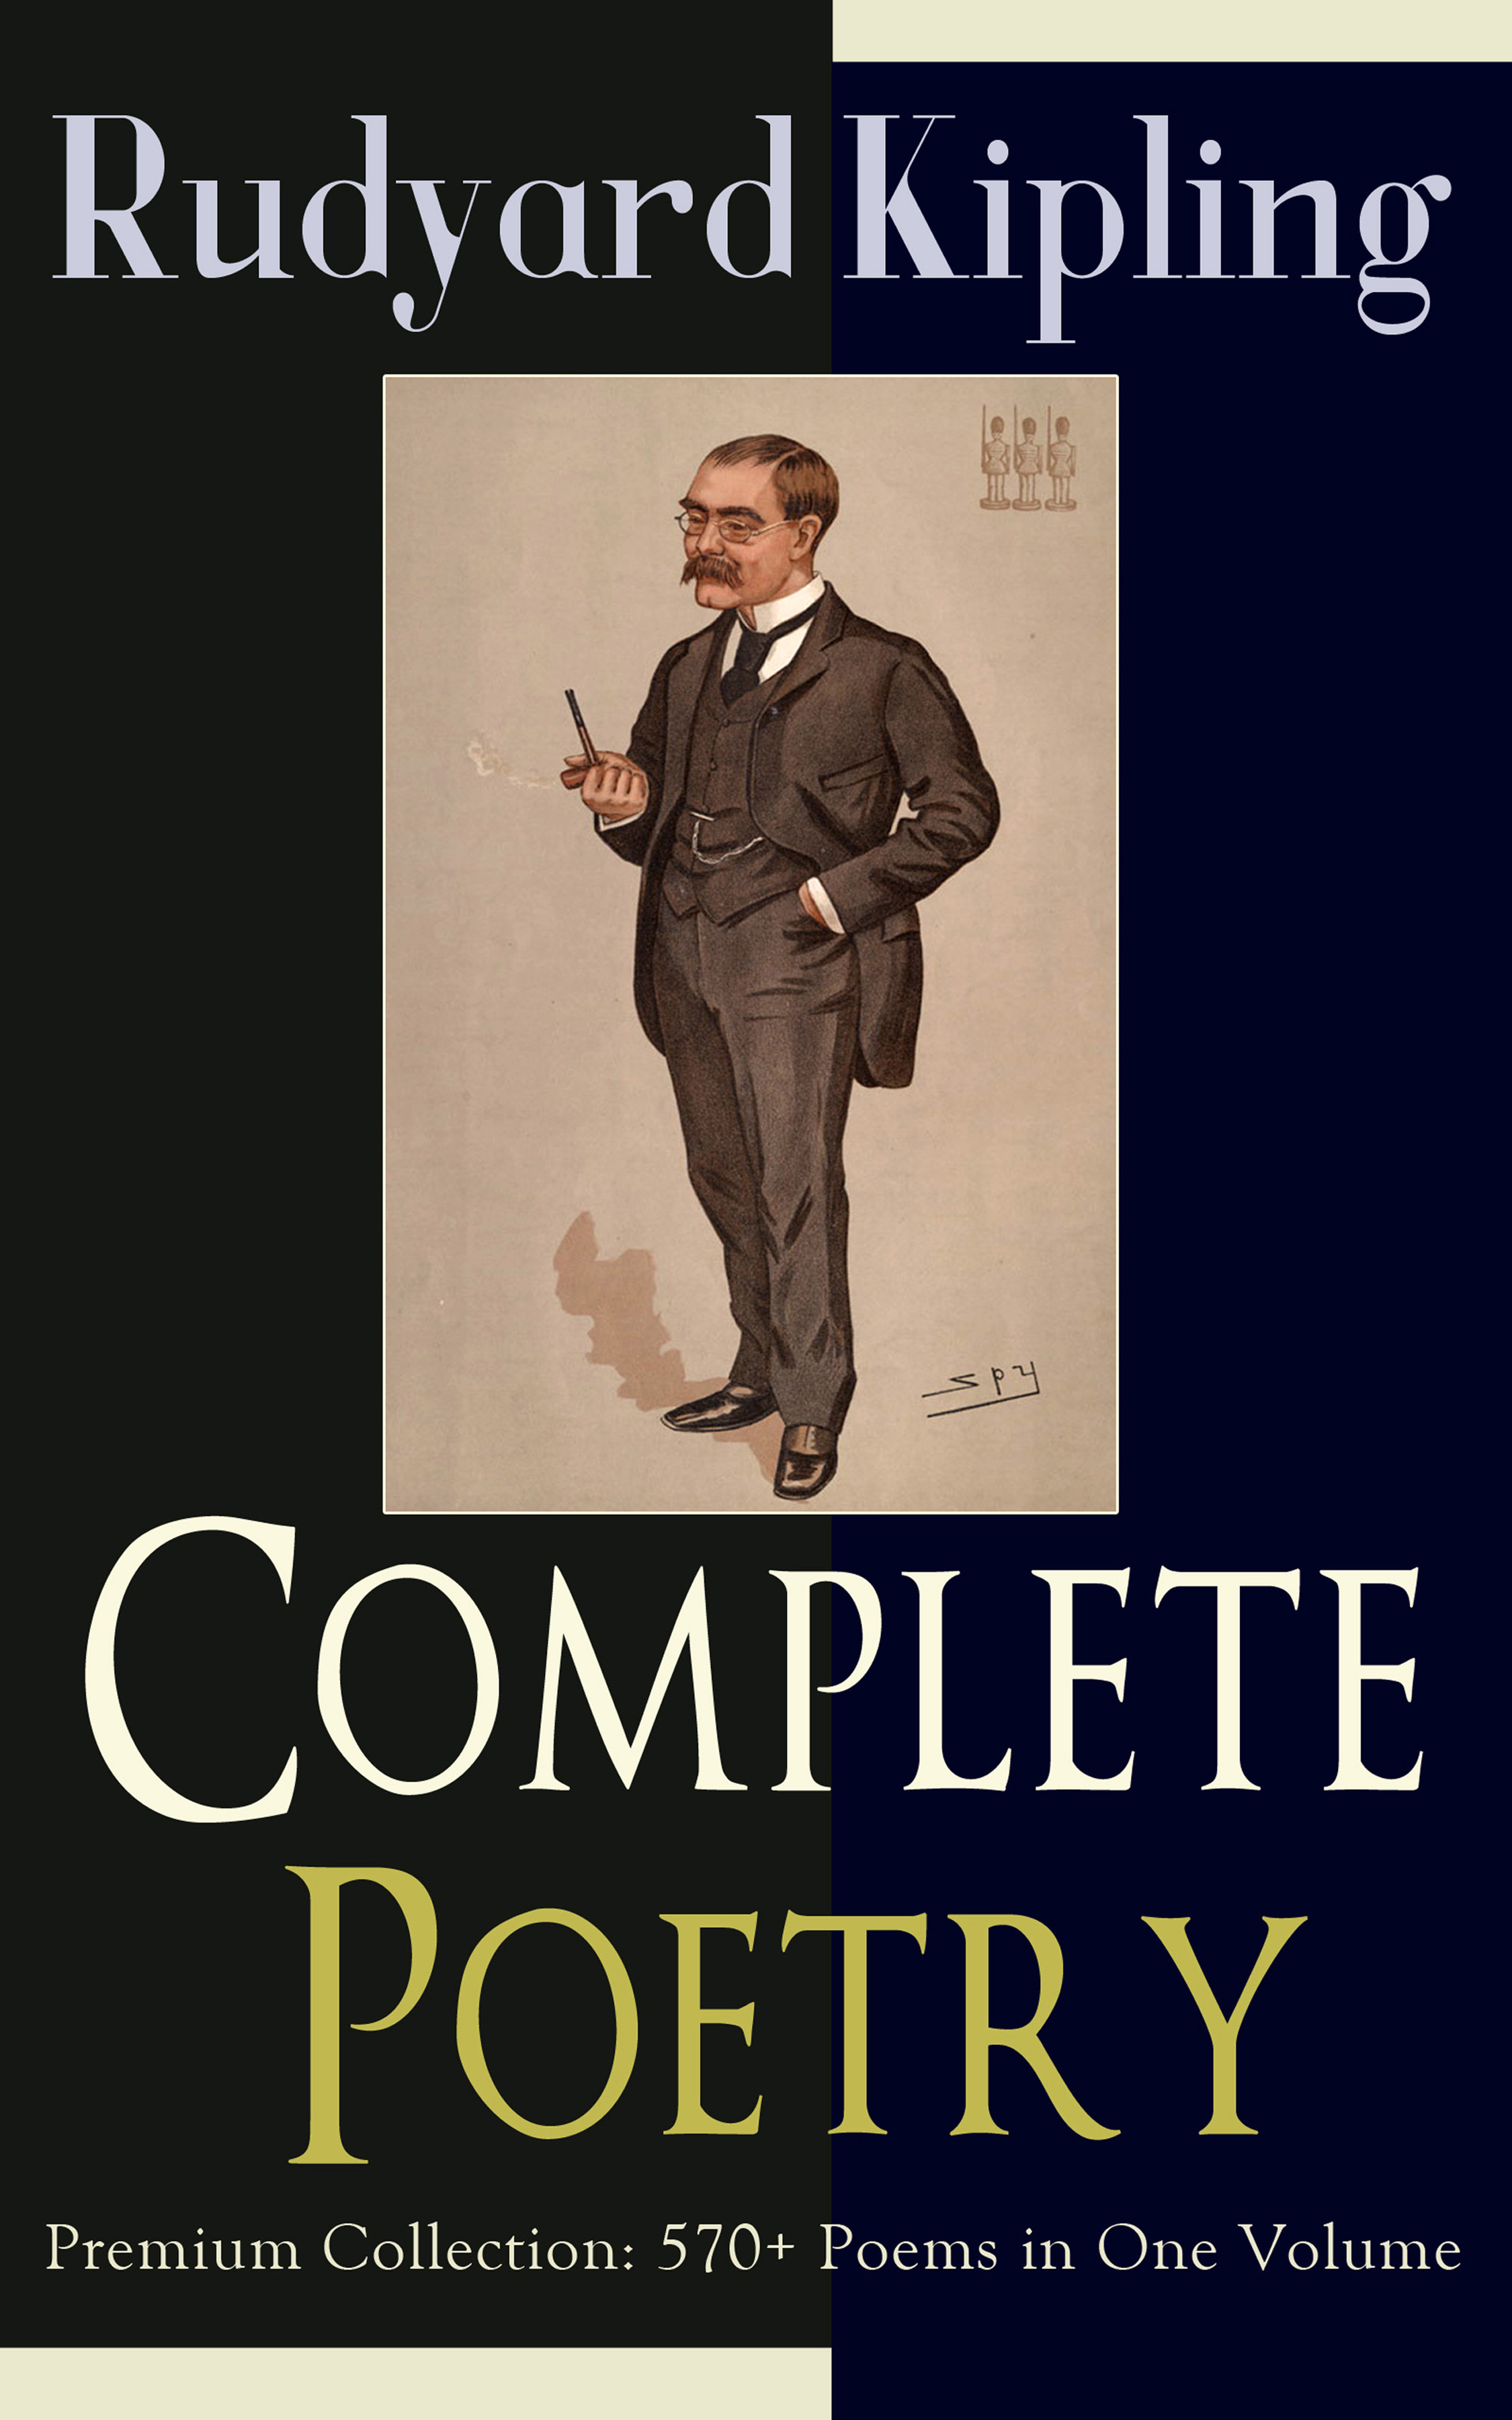 Rudyard Kipling Complete Poetry of Rudyard Kipling – Premium Collection: 570+ Poems in One Volume kipling платок